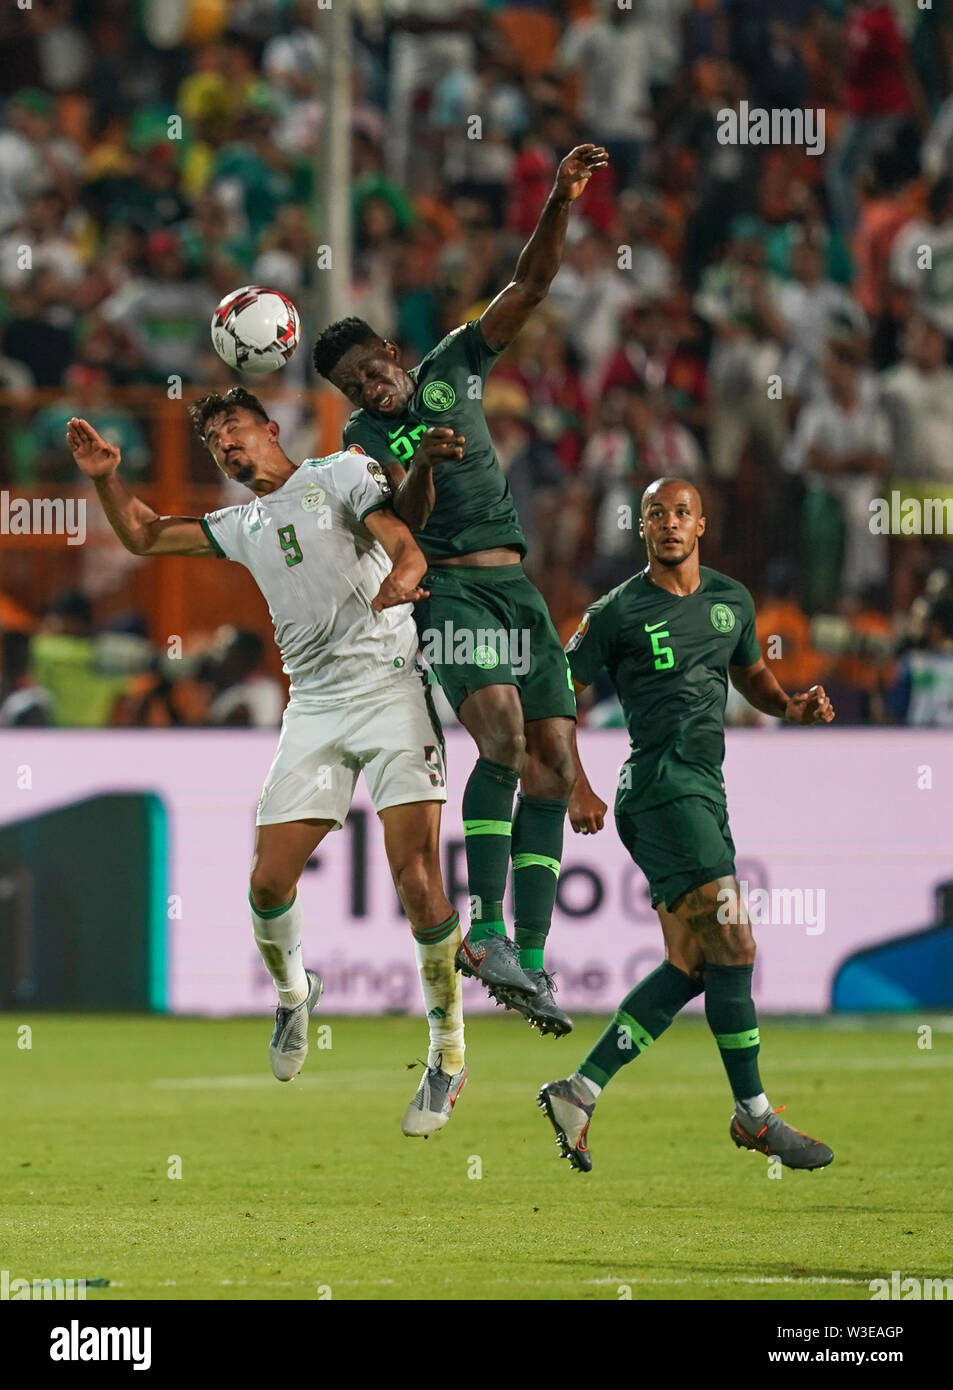 Cairo, Algeria, Egypt. 14th July, 2019. FRANCE OUT July 14, 2019: Baghdad Bounedjah of Algeria and Awaziem Chidozie Collins of Nigeria challenging for the ball during the 2019 African Cup of Nations match between Algeria and Nigeria at the Cairo International Stadium in Cairo, Egypt. Ulrik Pedersen/CSM/Alamy Live News - Stock Image